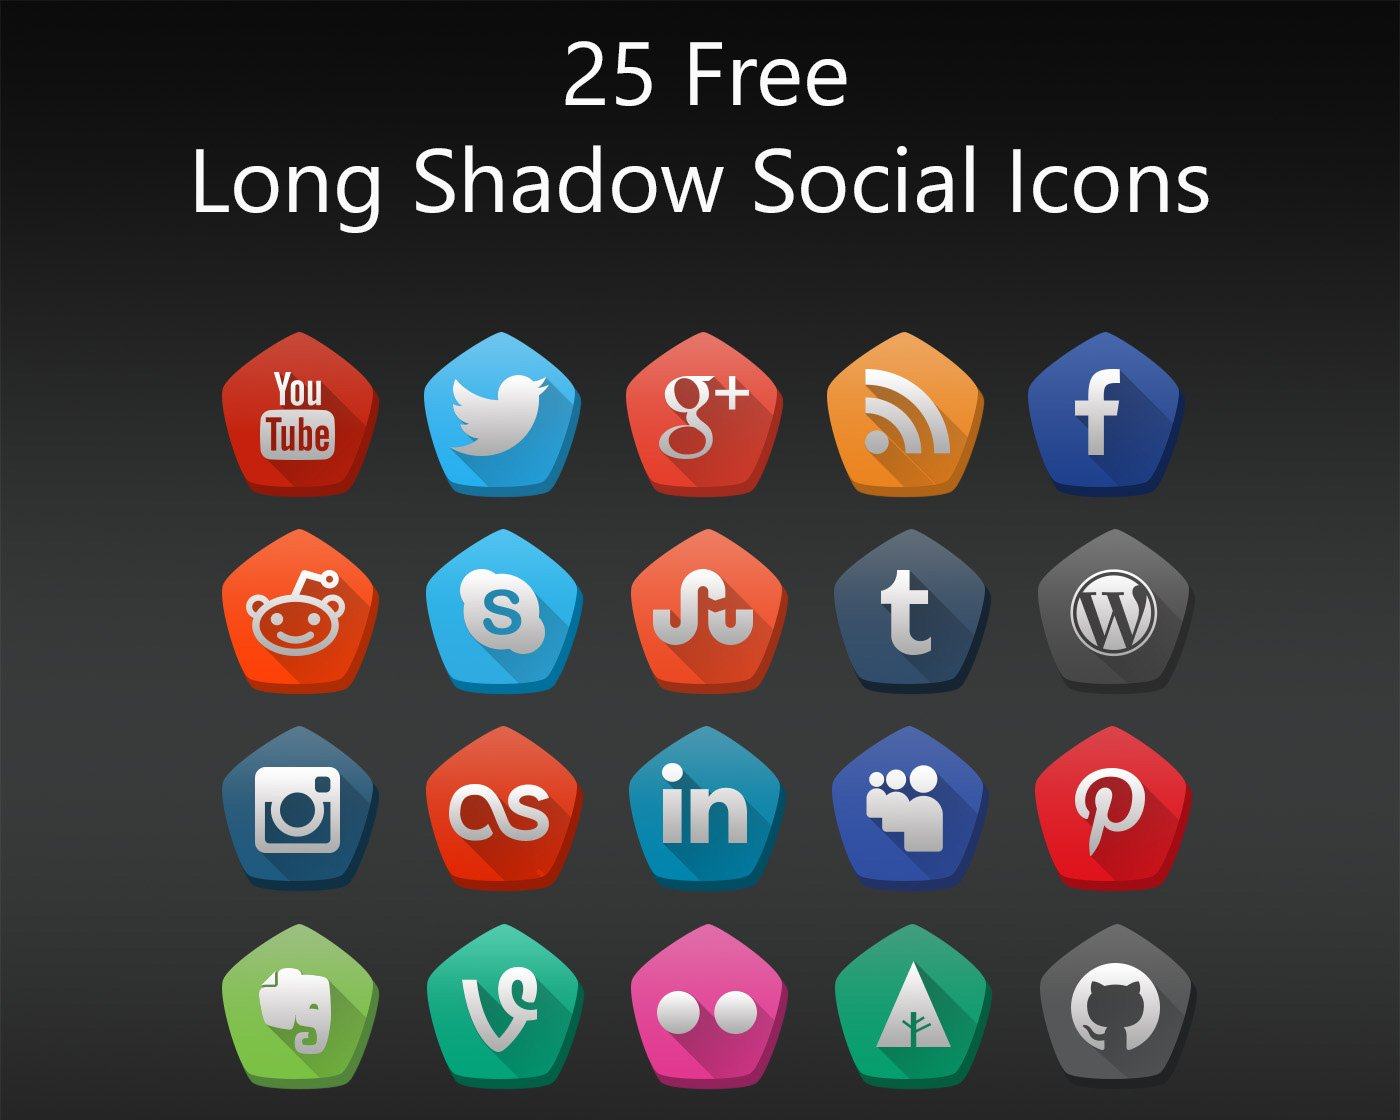 25 Free Long Shadow Social Icons